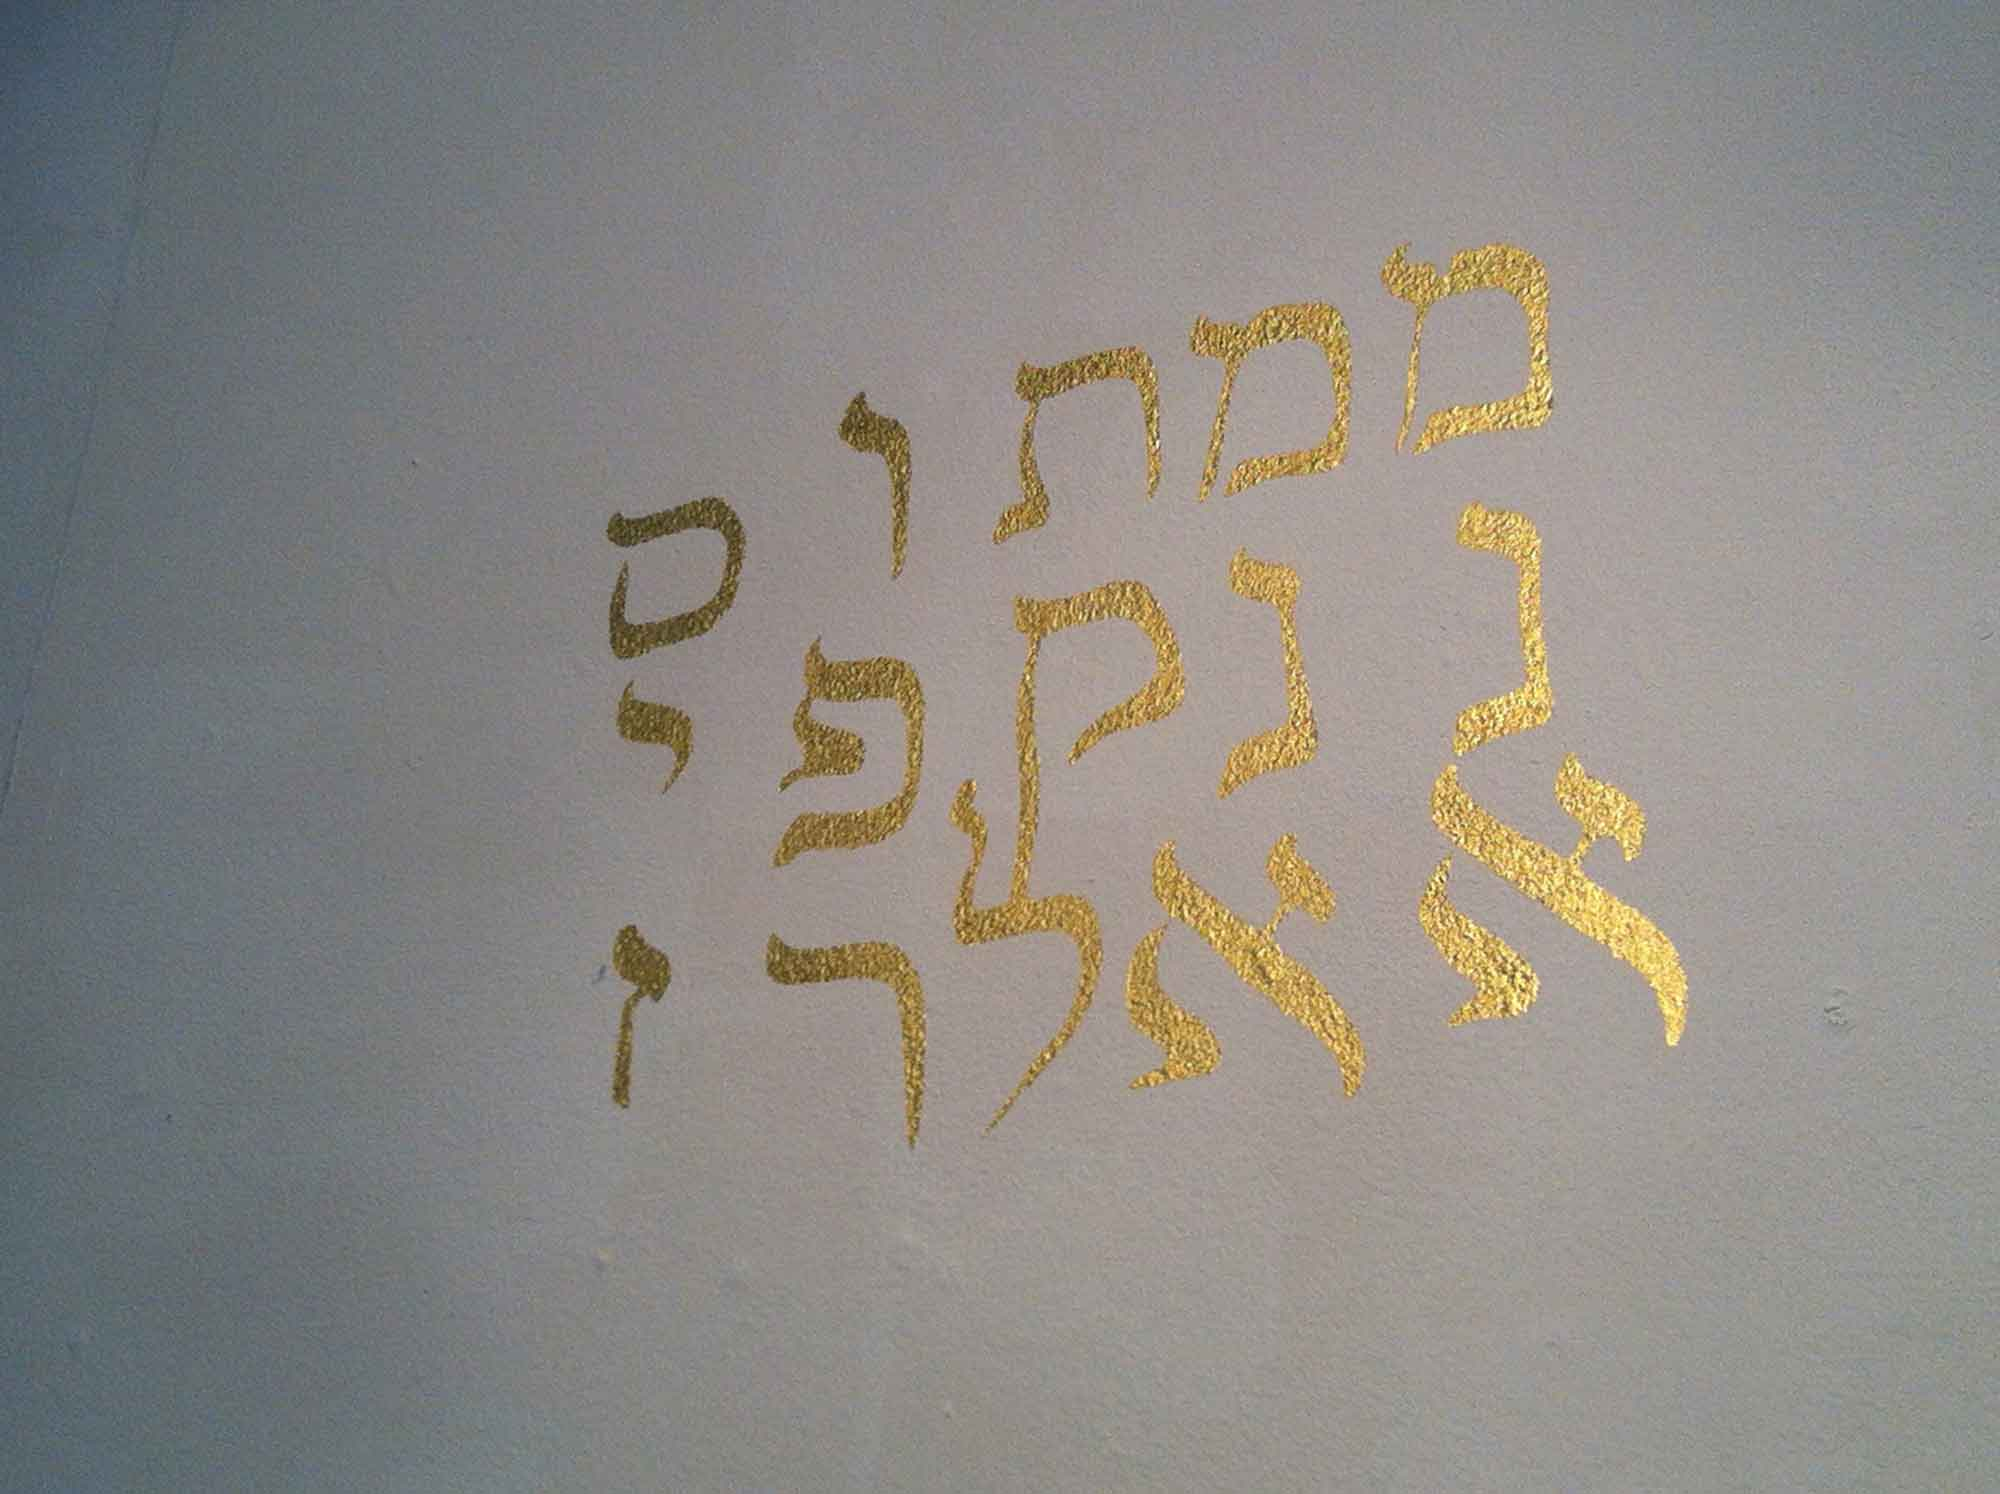 Installation view 3 / The Writing on the Wall, after Rembrandt (2014)